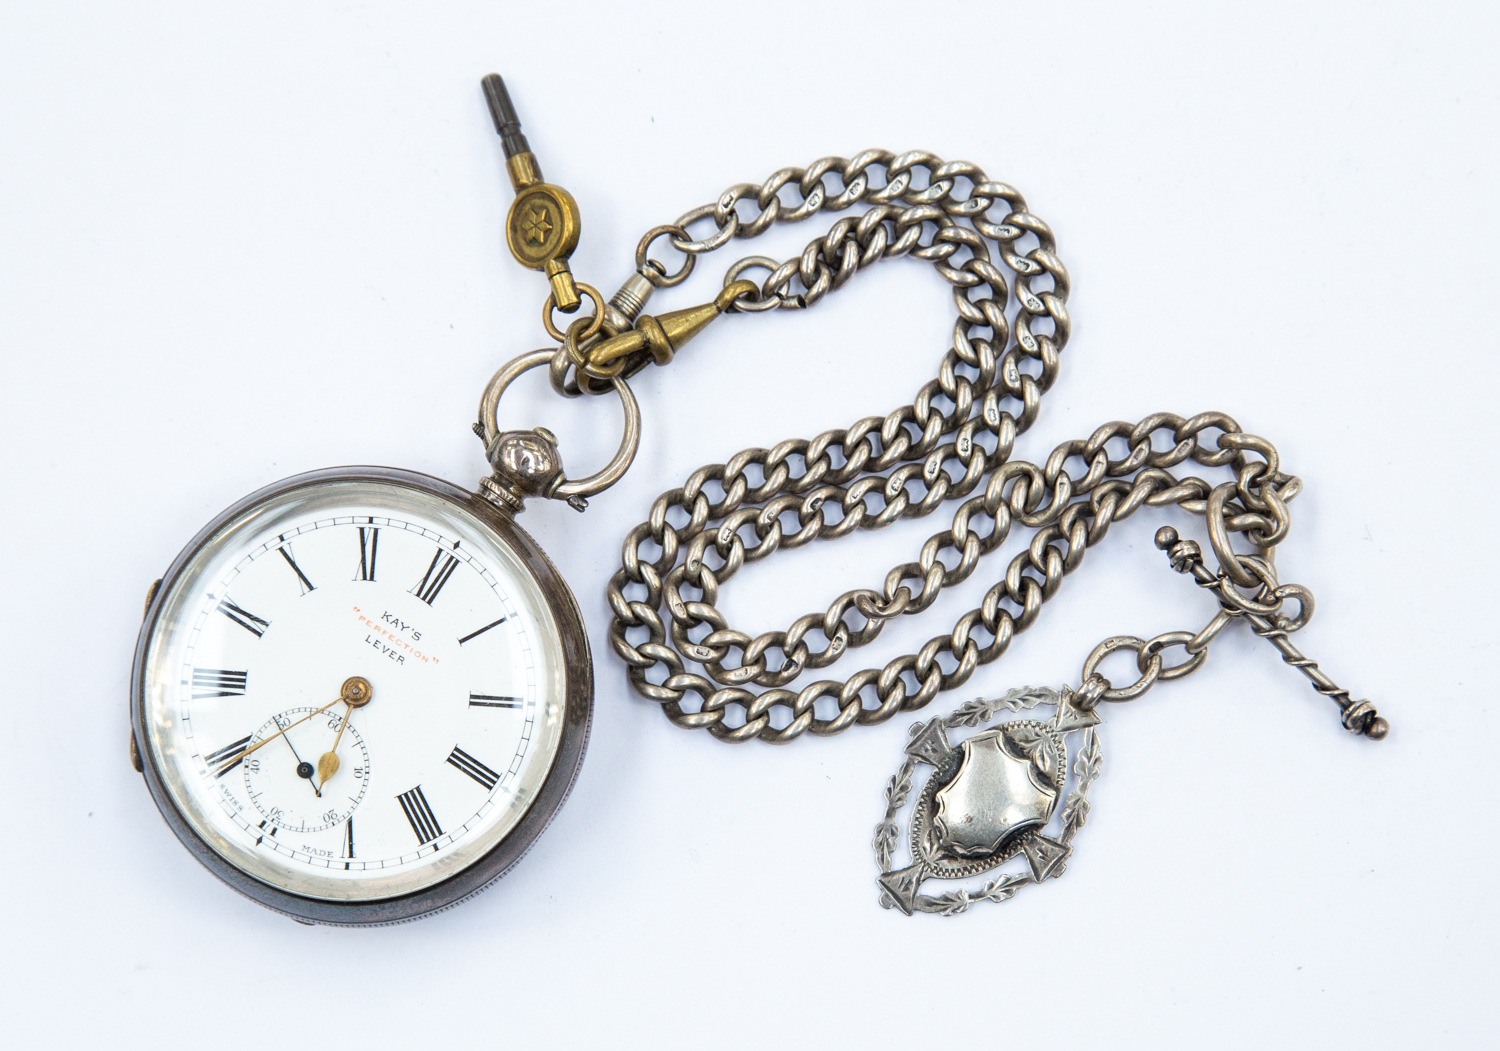 Lot 407 - A late 19th Century gents pocket watch, chain, medallion and key, KAY's Perfection lever